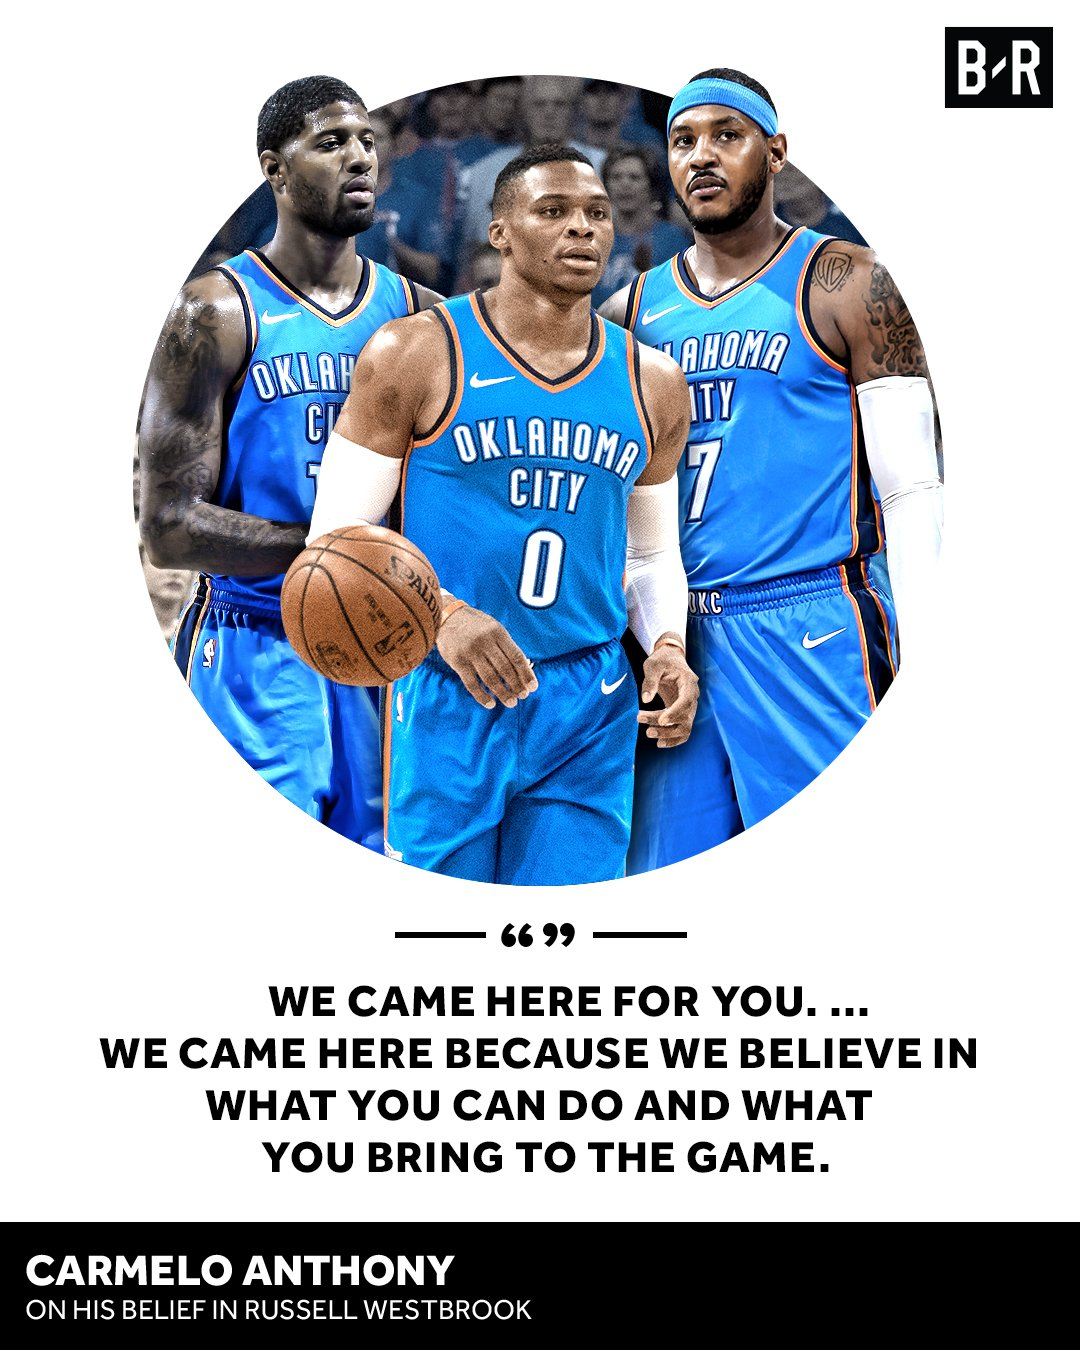 Russ is why there's an OK3. https://t.co/F4bobB0FVM